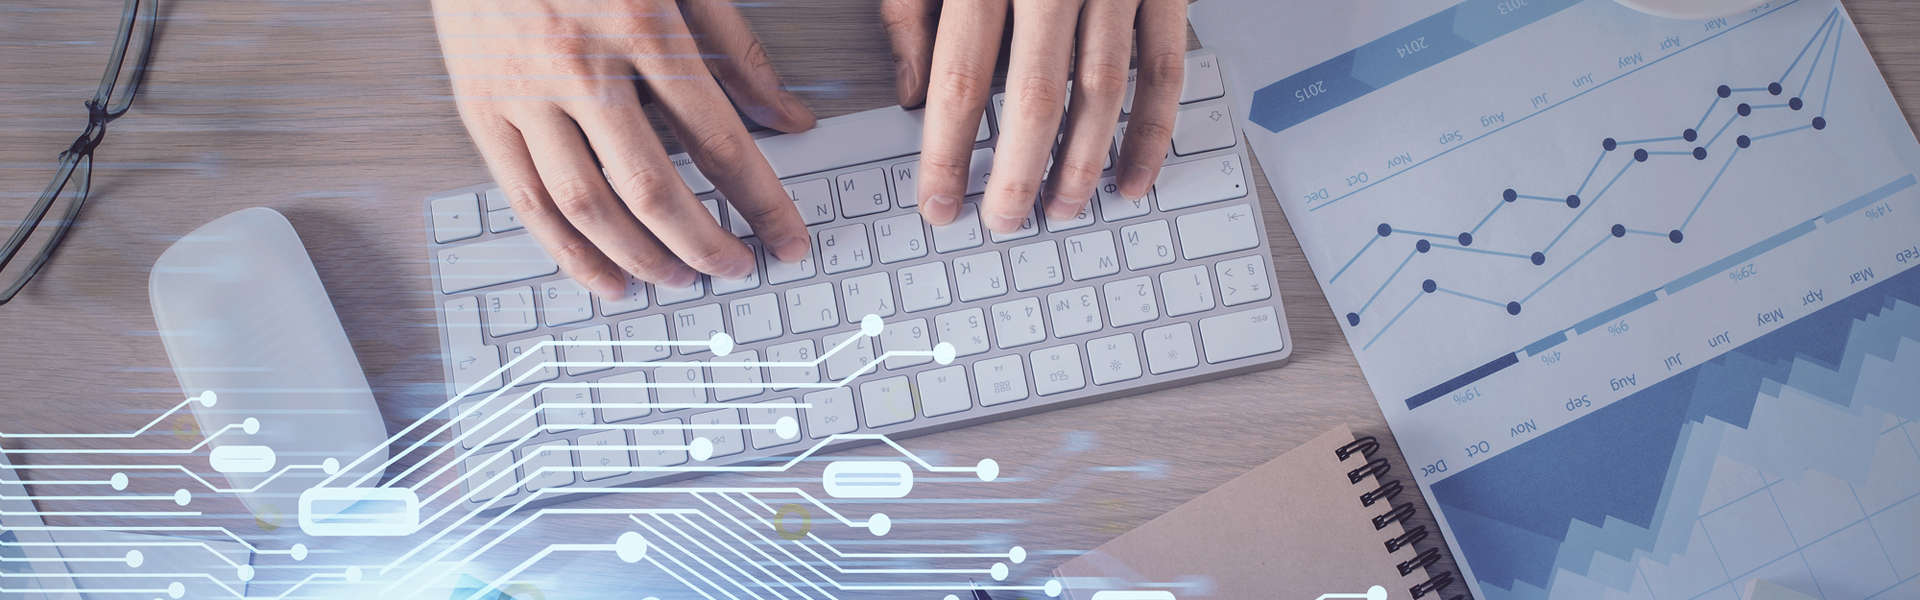 Hire a technical writer for IT industry content